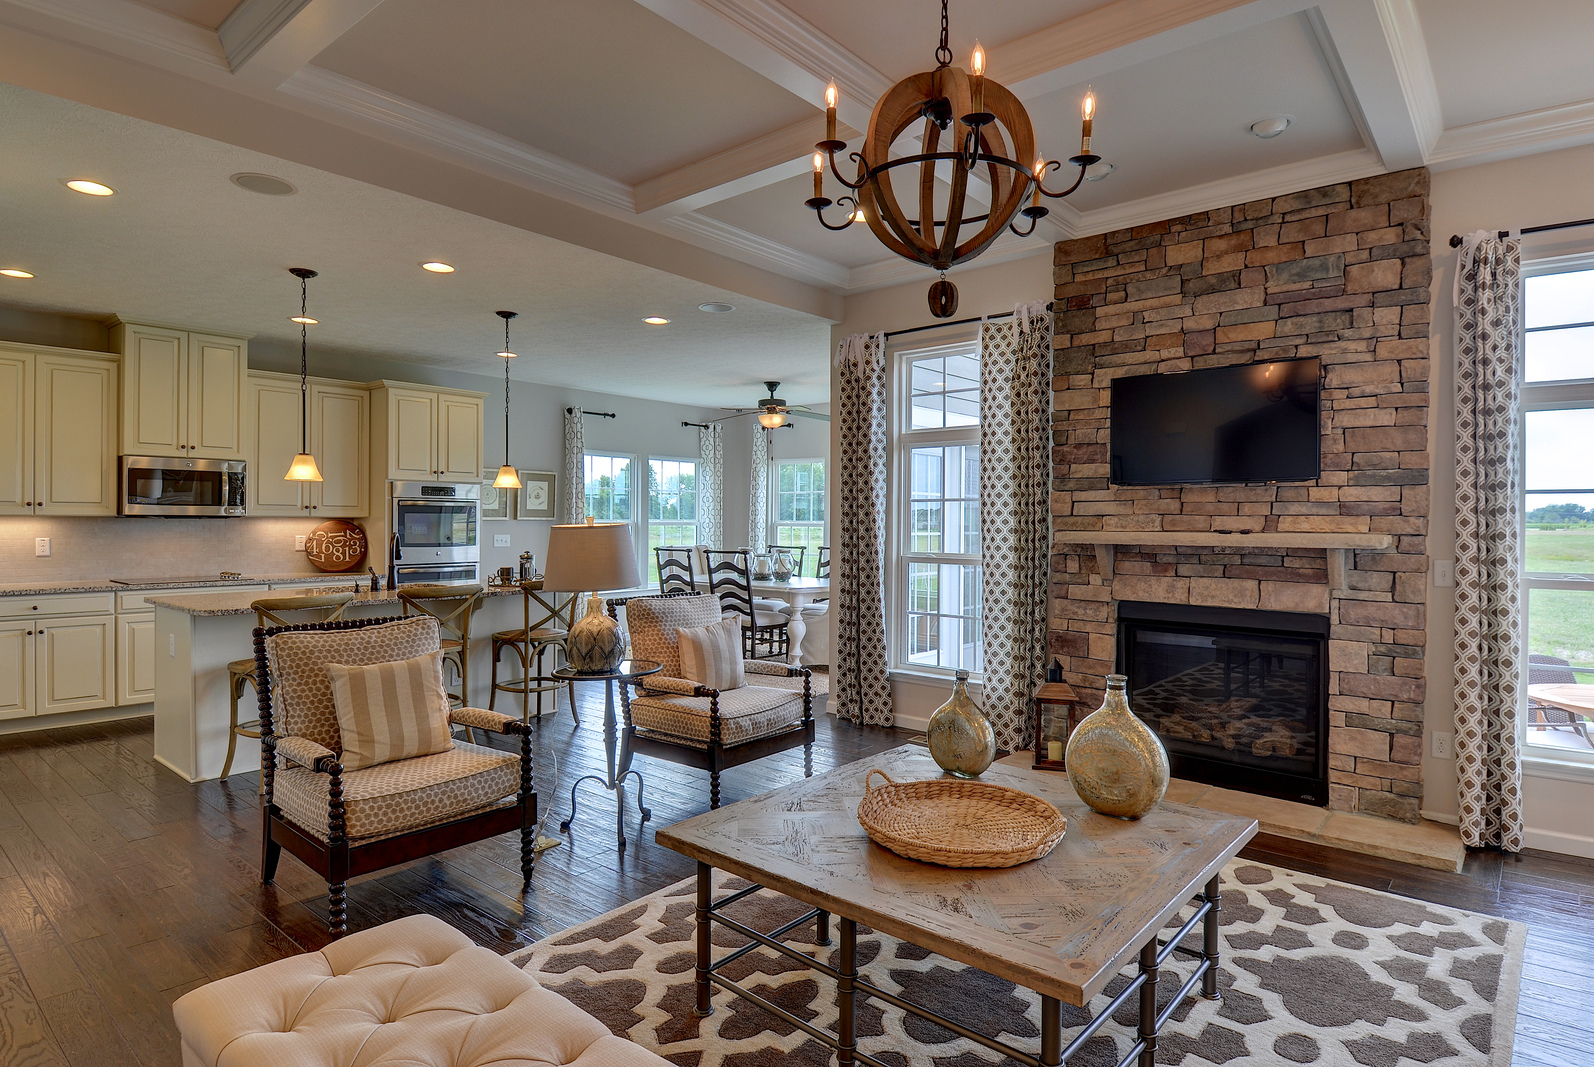 Ranch Floor Plans Open Concept New Homes For Sale At Peachmont Farms In Evans City Pa